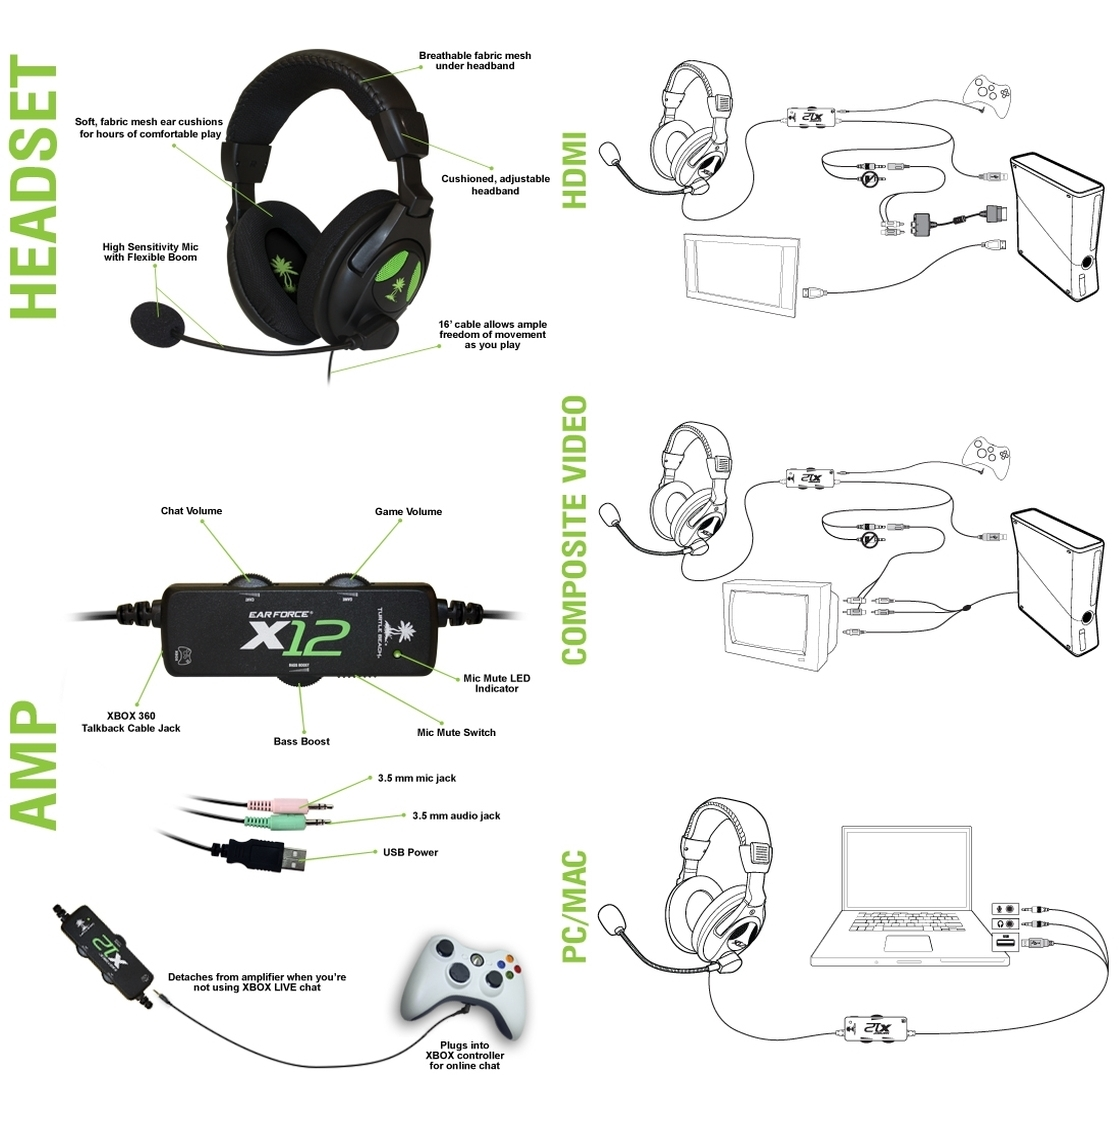 Casti Gaming Turtle Beach Ear Force X12 Black Pentru Pc Si